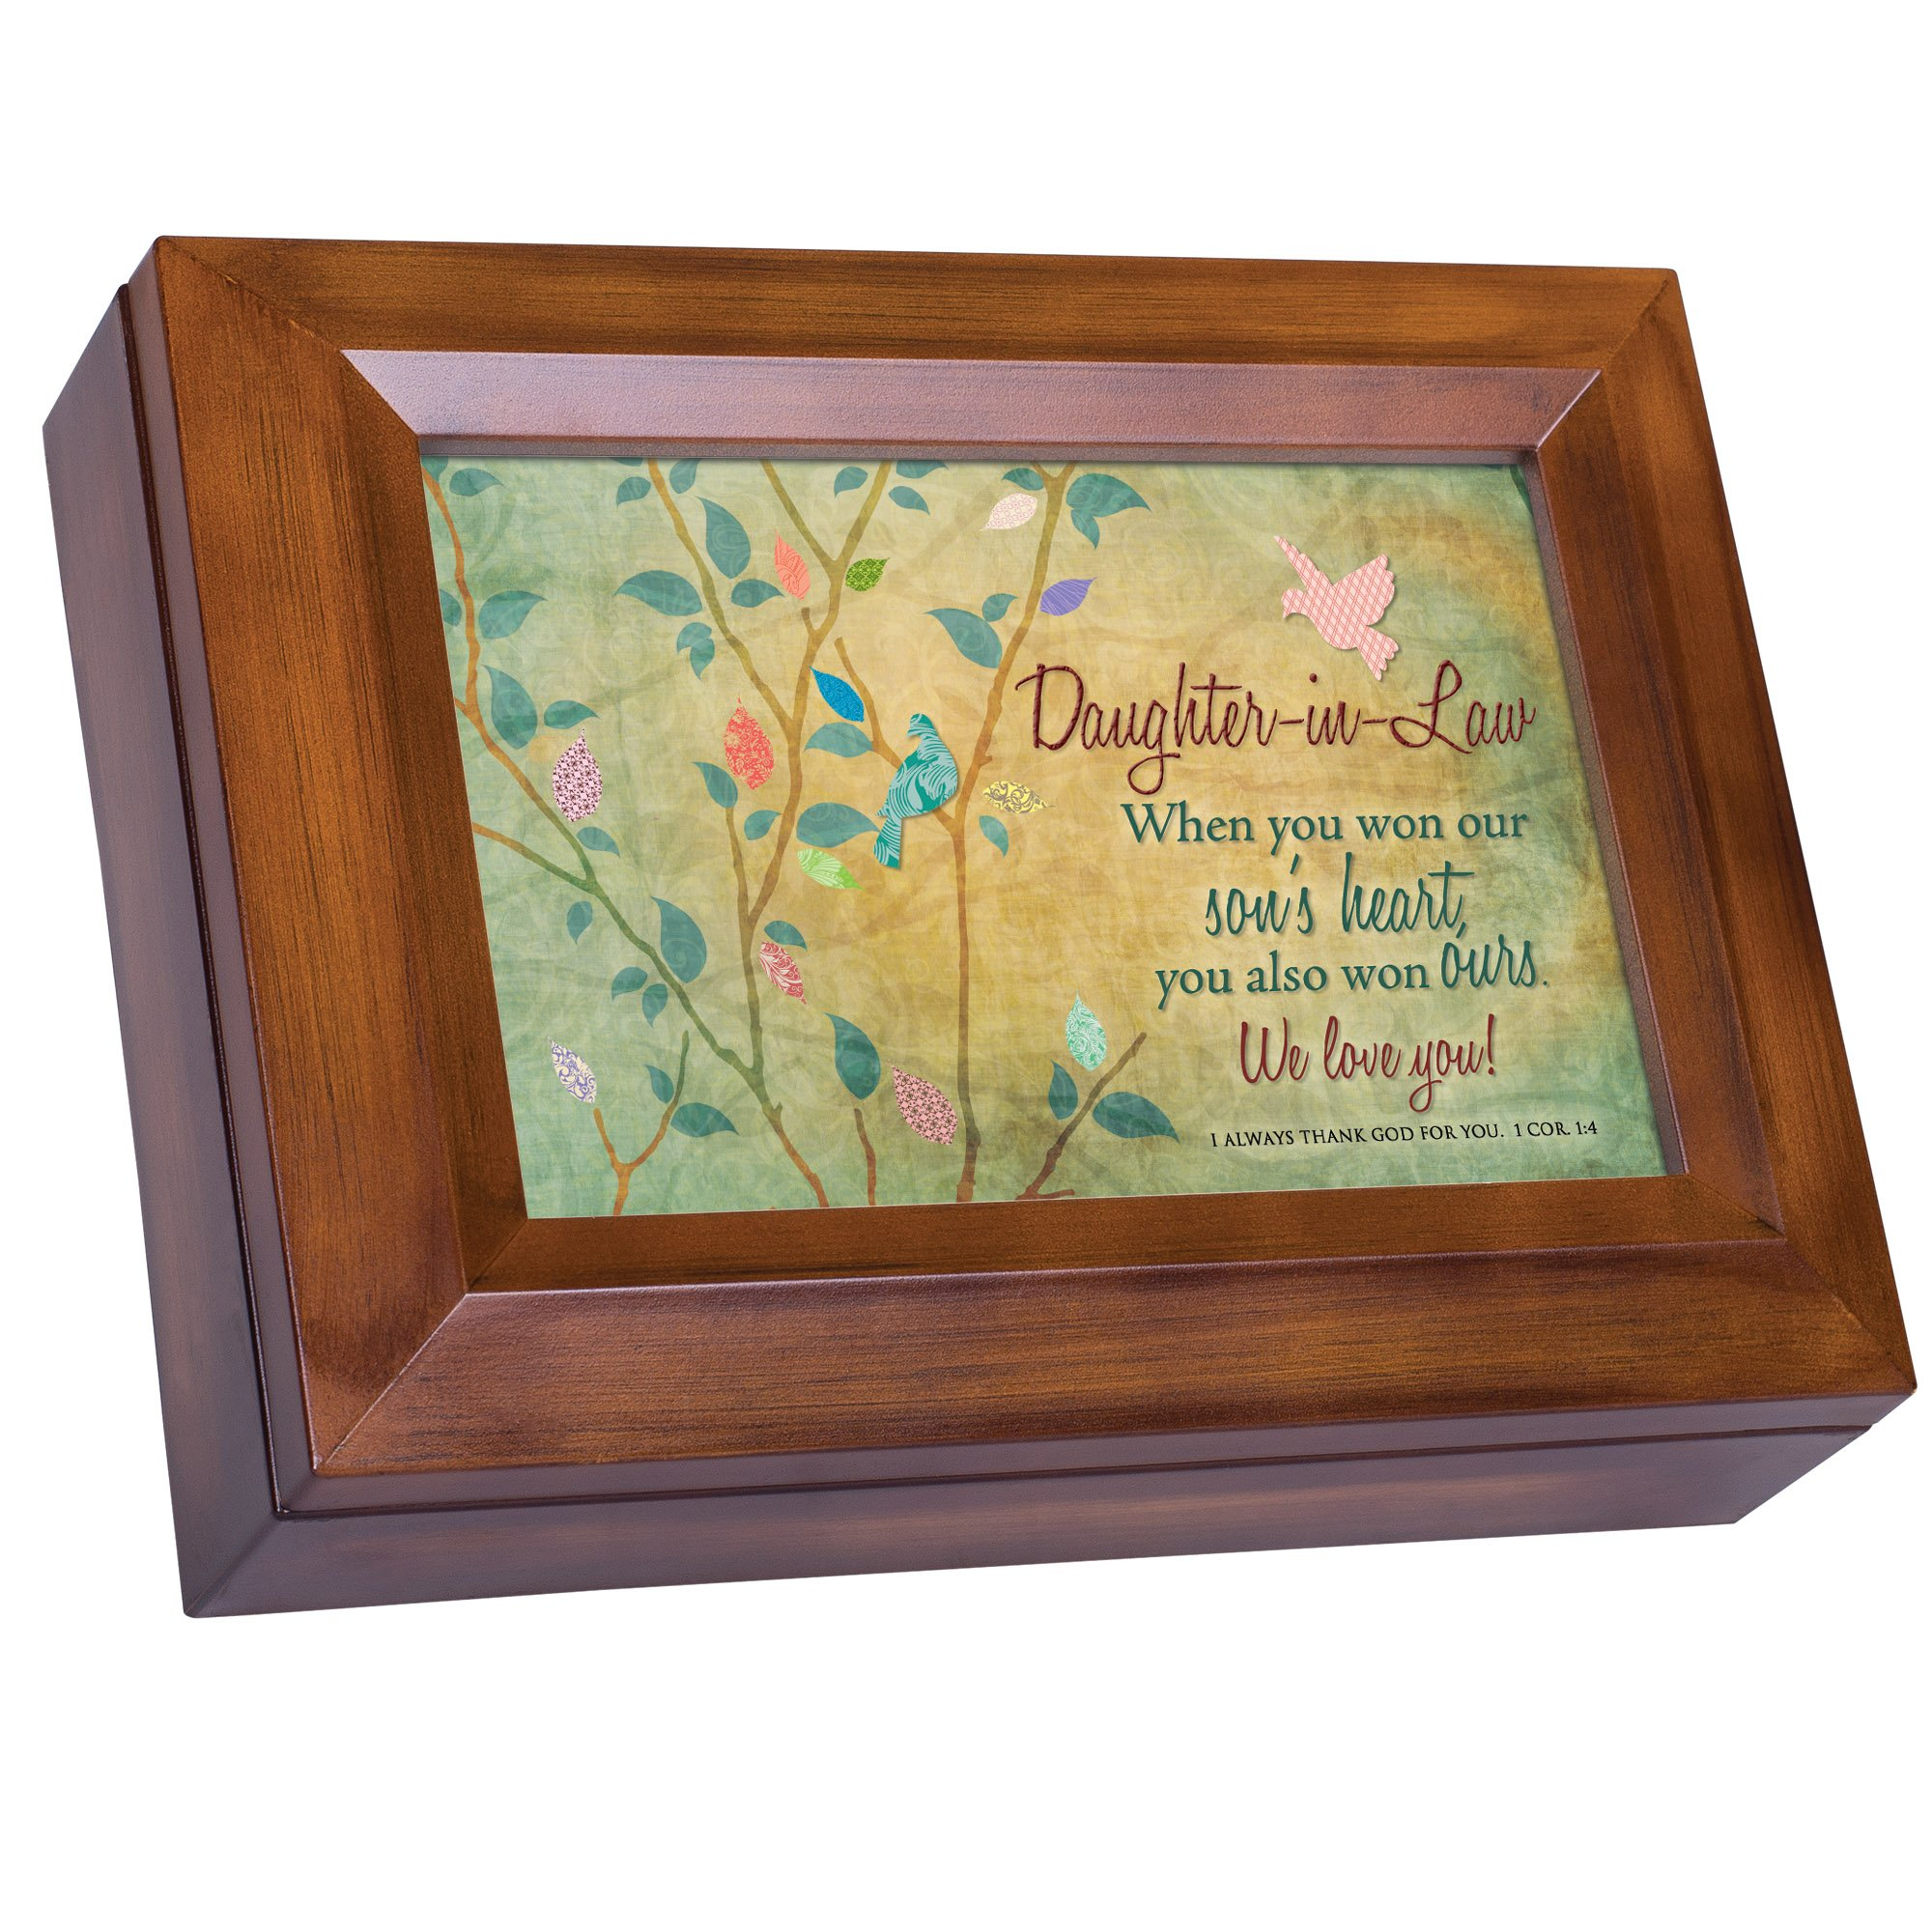 Cottage Garden Daughter-in-Law We Love You Wood Finish Jewelry Music Box - Plays Tune You Are My Sunshine by Cottage Garden (Image #1)